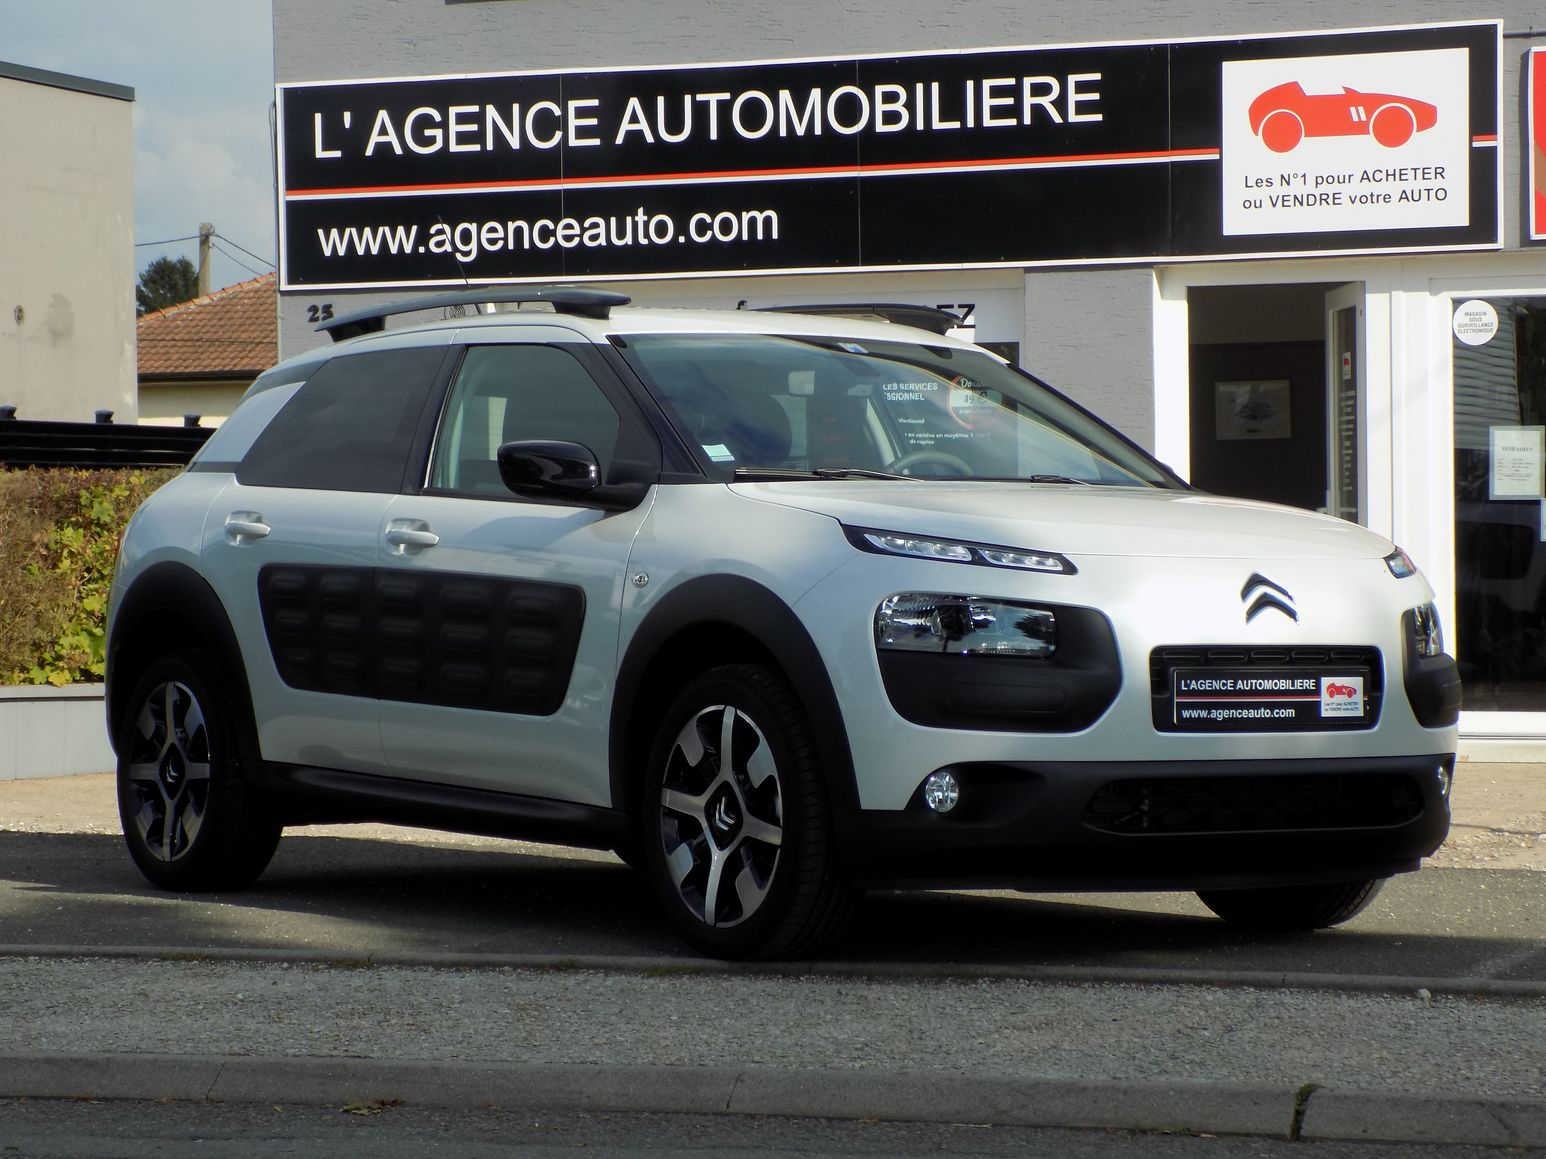 citroen c4 cactus puretech 110 shine edition blanc nacr occasion montbeliard pas cher voiture. Black Bedroom Furniture Sets. Home Design Ideas